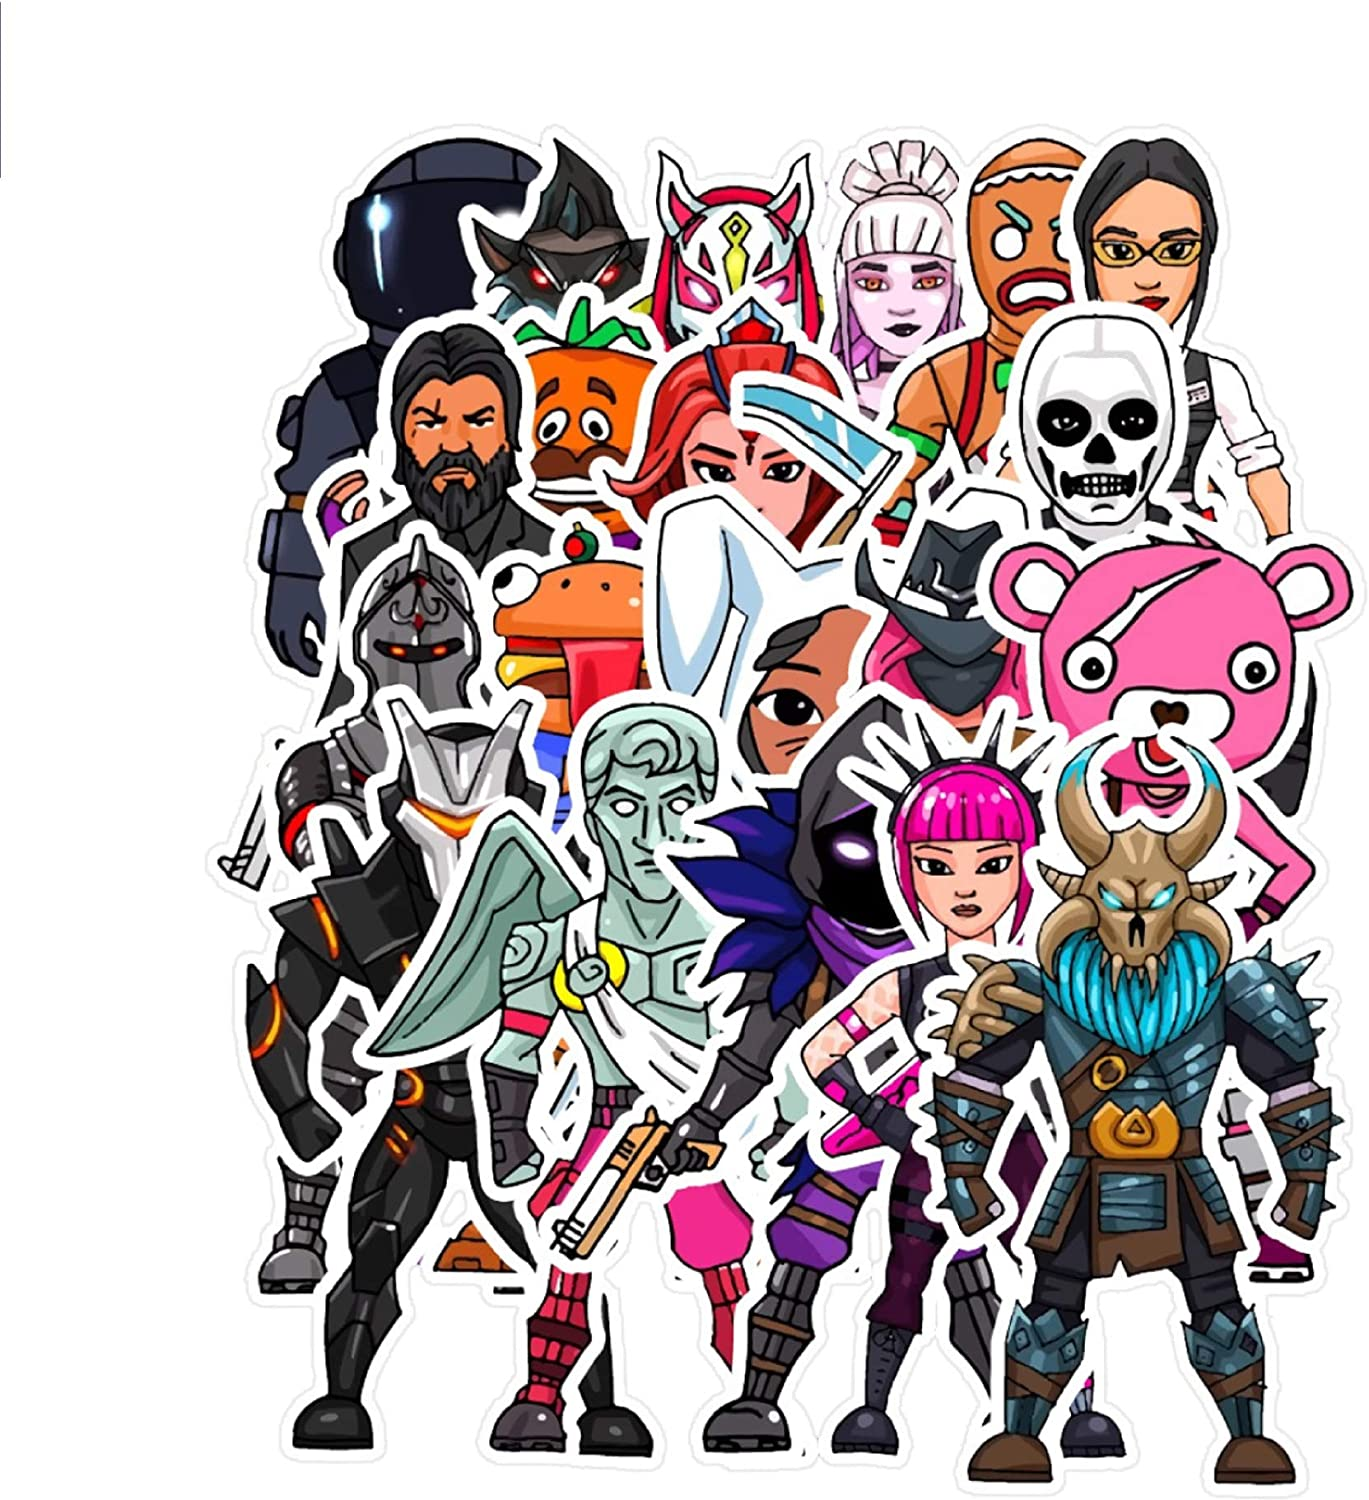 Popular Skins Sticker Set (20 PCS), Video Game Party Supplies, Waterproof Stickers Laptop, Trolley, Car